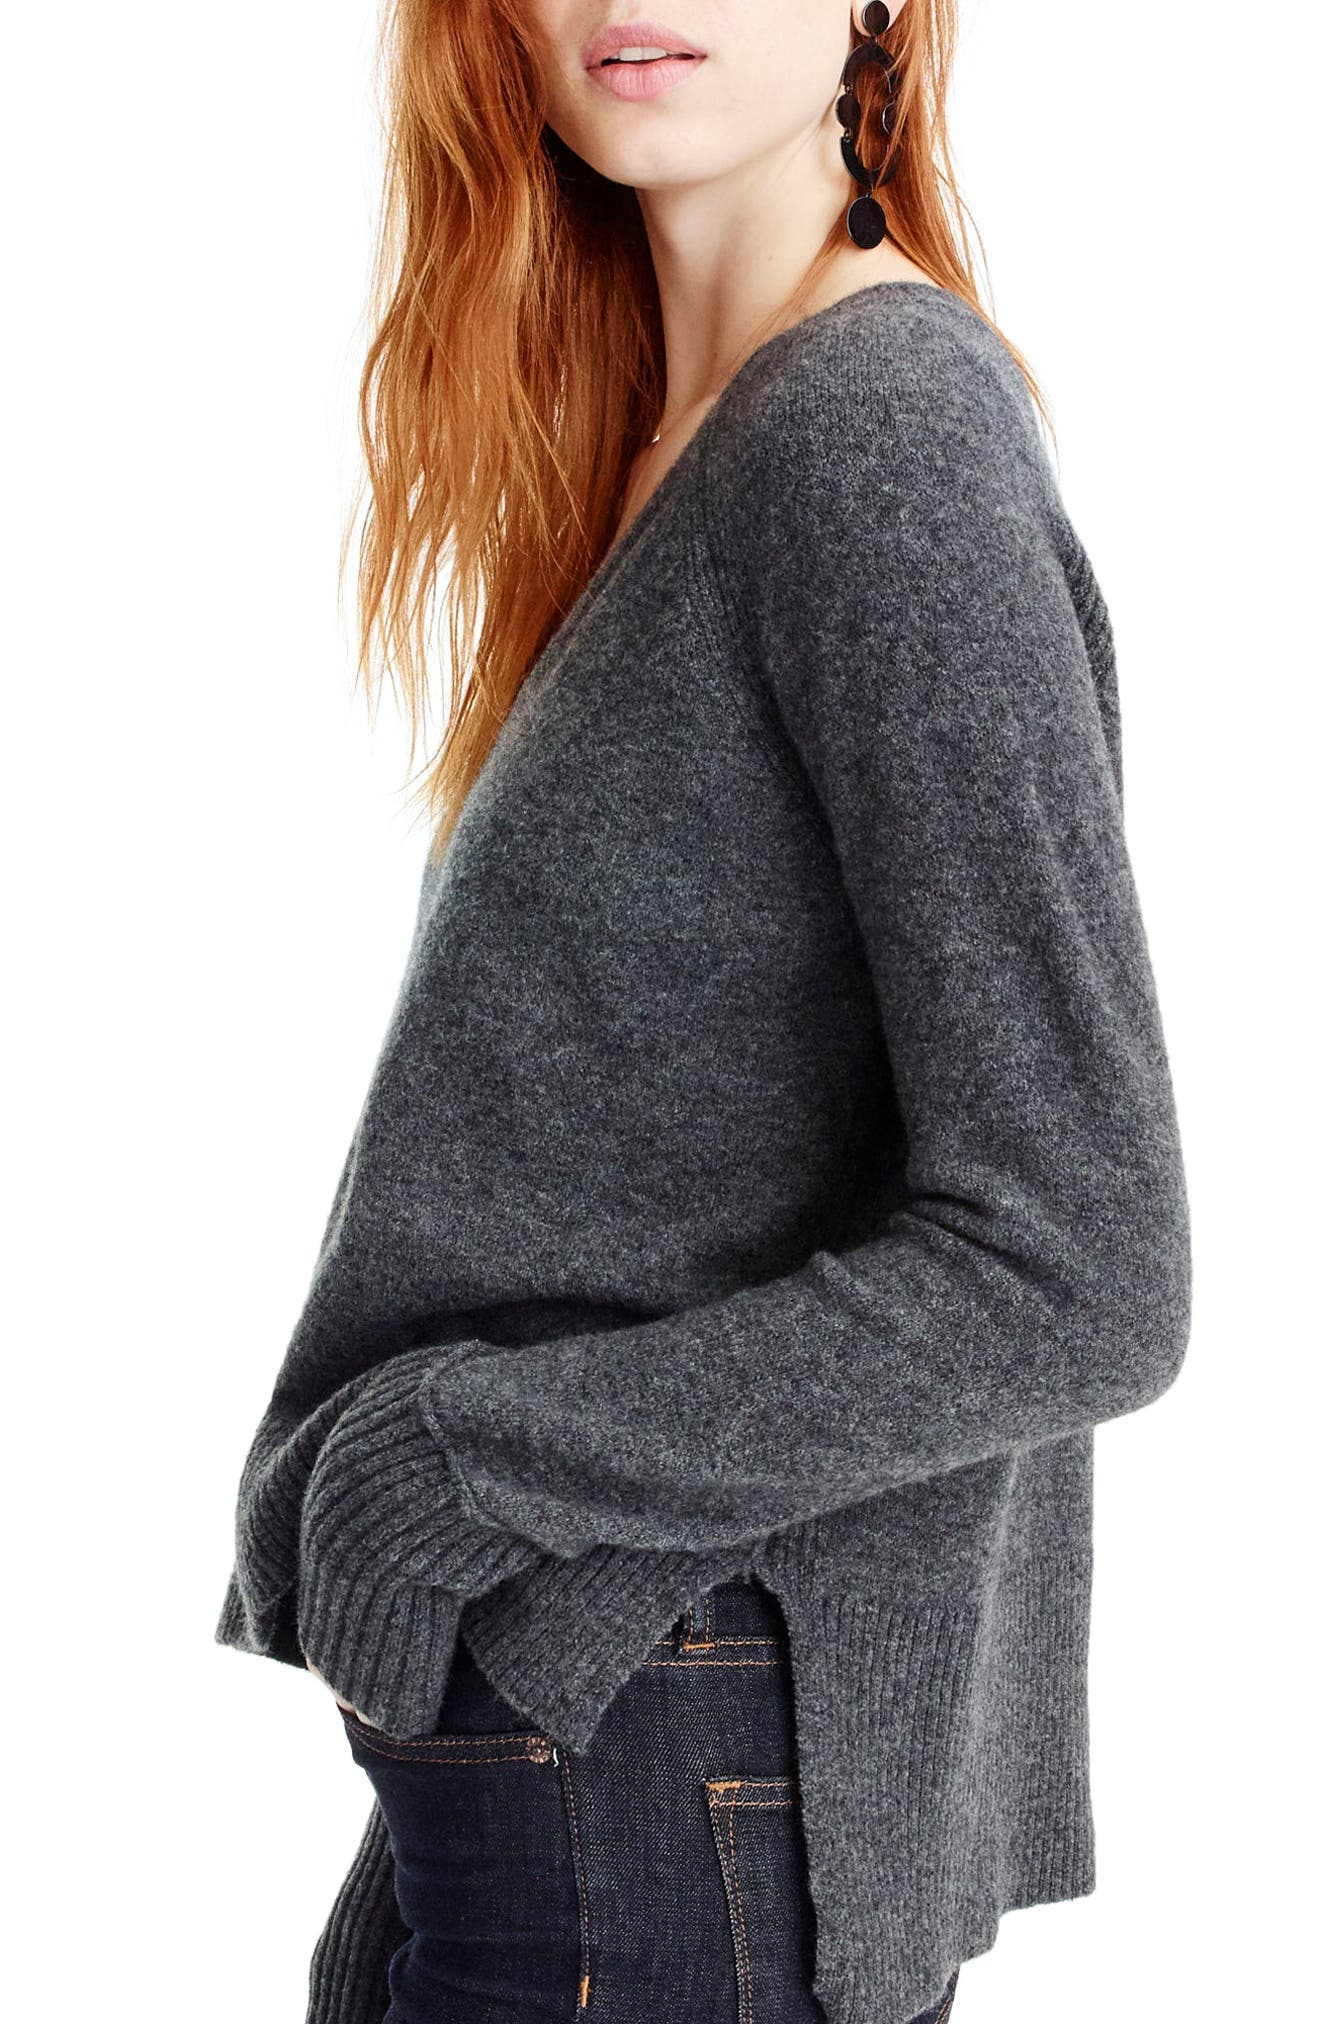 J.Crew Supersoft Yarn V-Neck Sweater,                             Alternate thumbnail 2, color,                             Heather Carbon